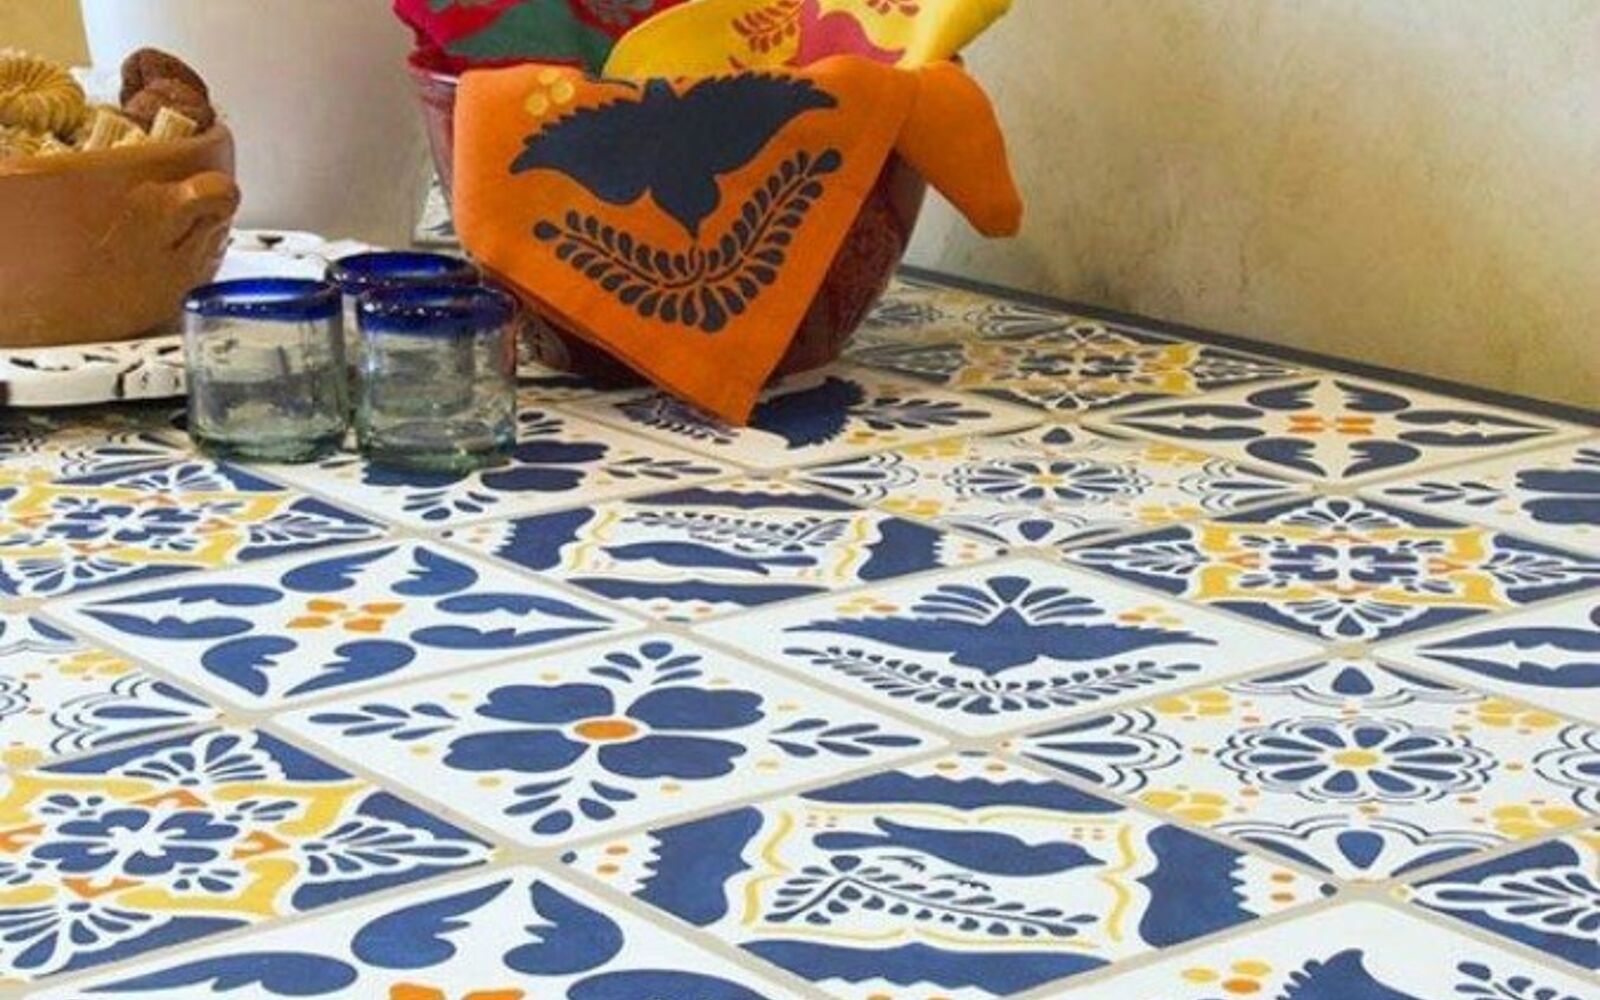 s 14 glamorous ways to upgrade your home using stencils, home decor, Give your kitchen table a Mexican vibe